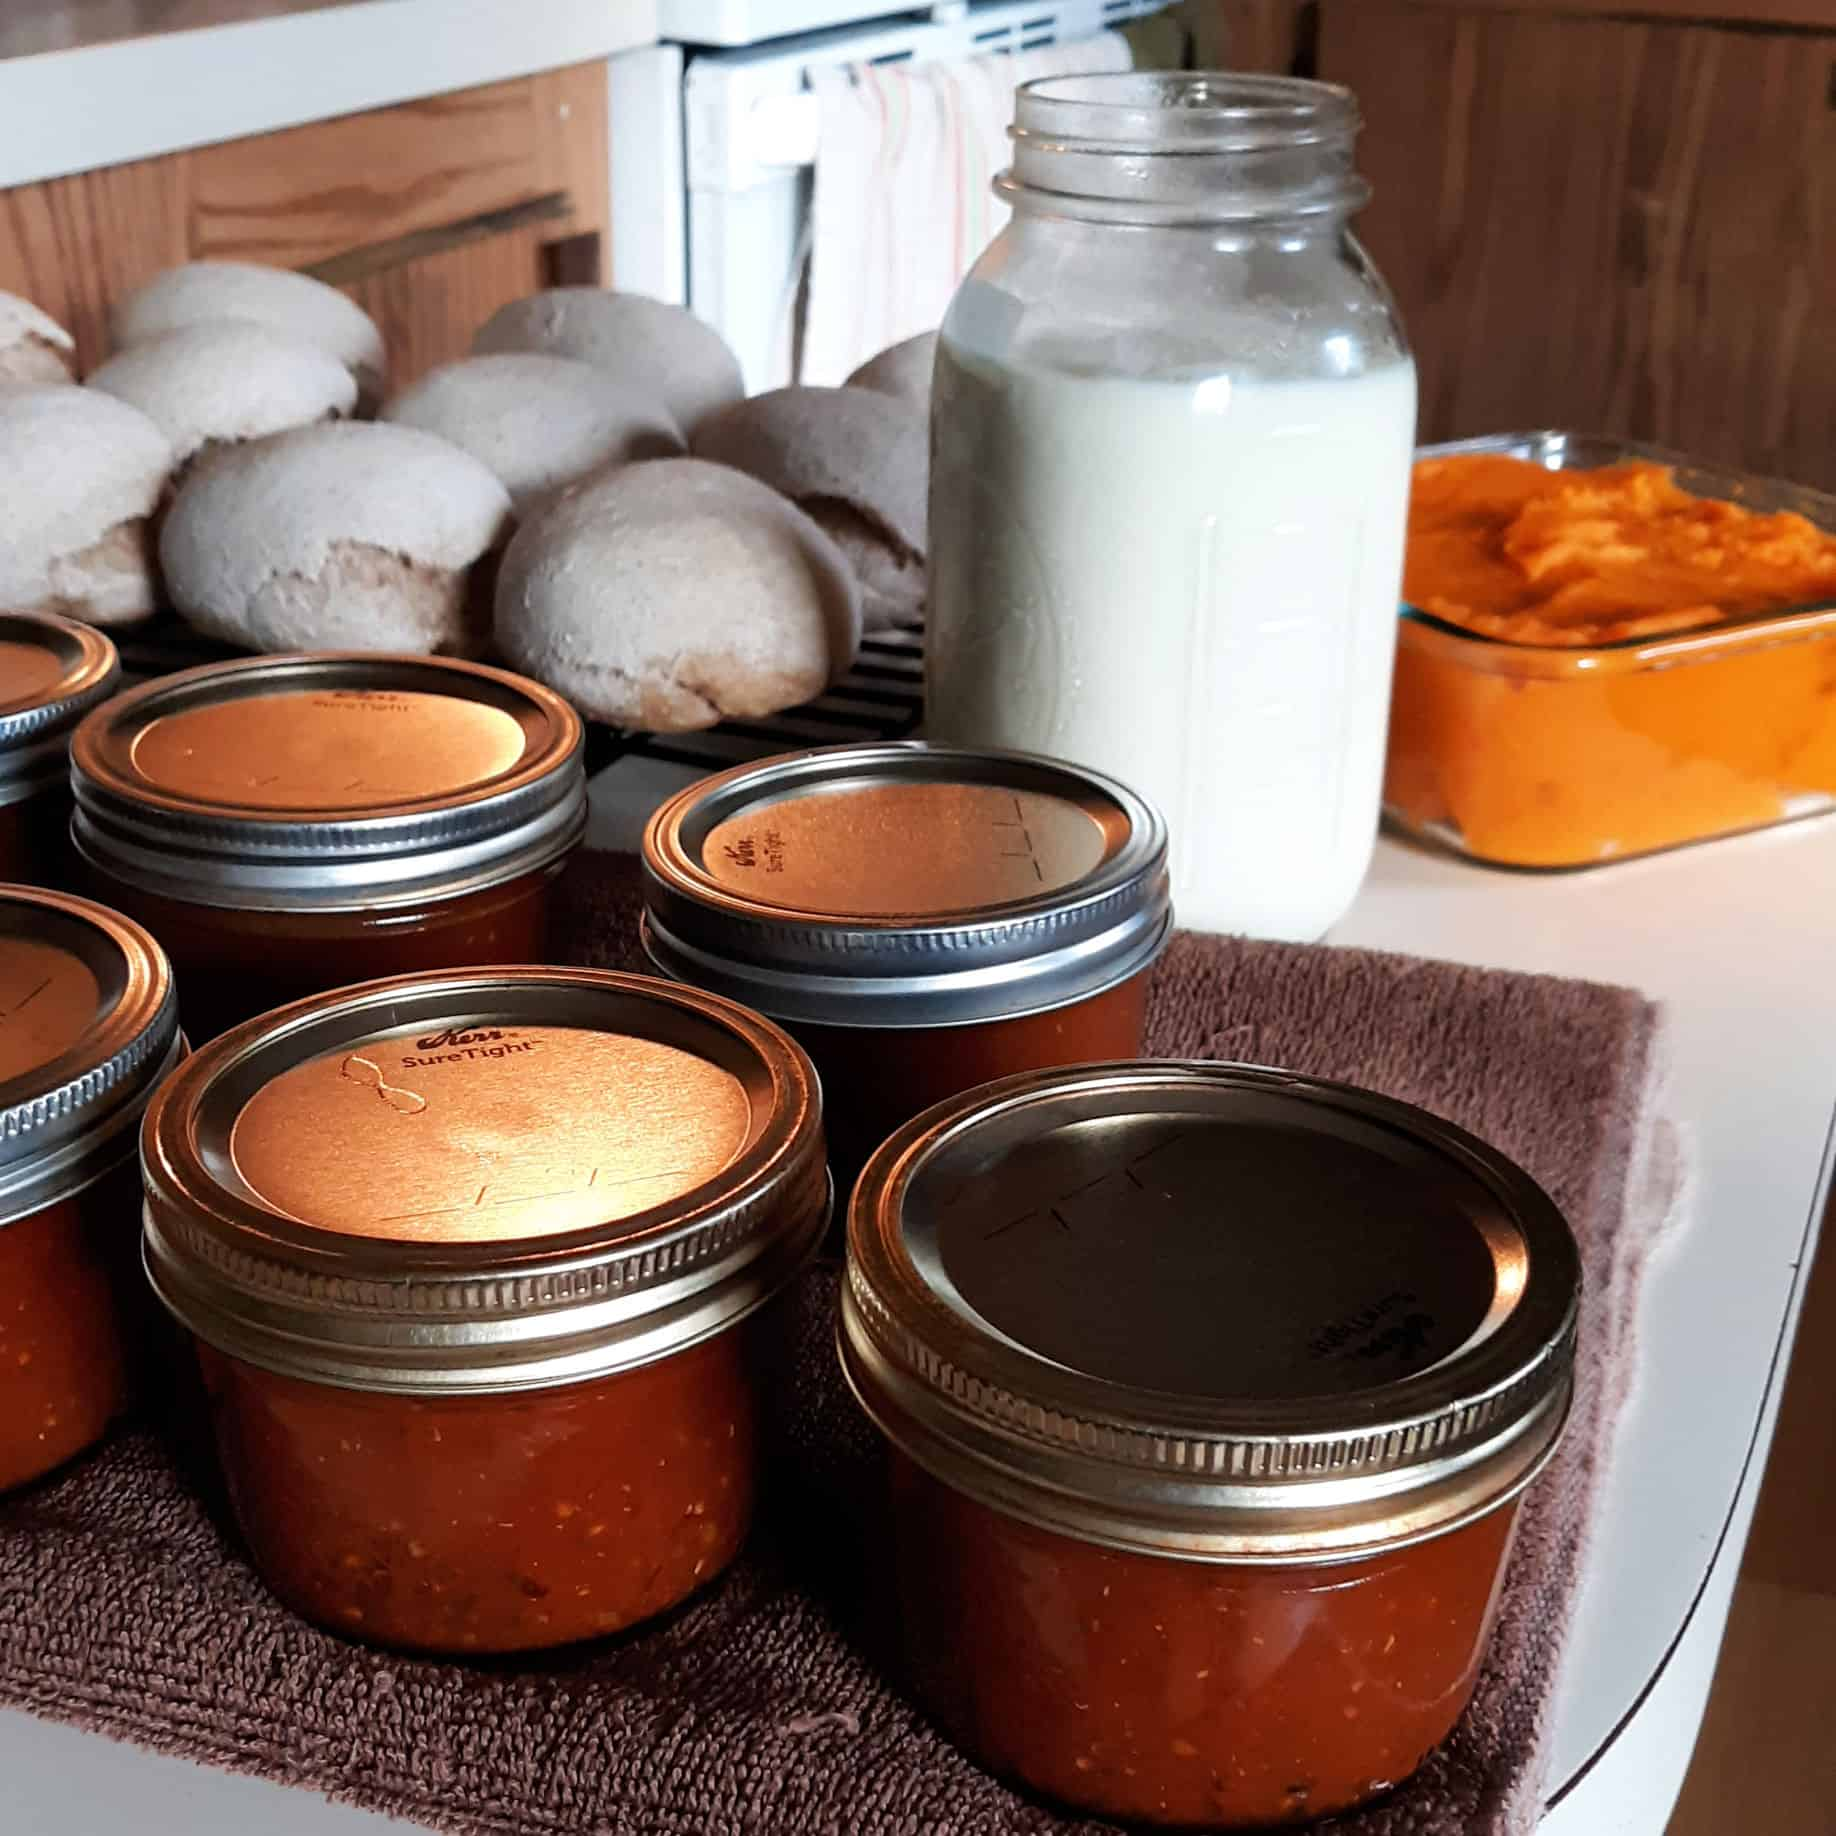 A kitchen counter full of jars of canned tomato sauce, freshly made bread rolls, a jar of yogurt, and pumpkin puree.